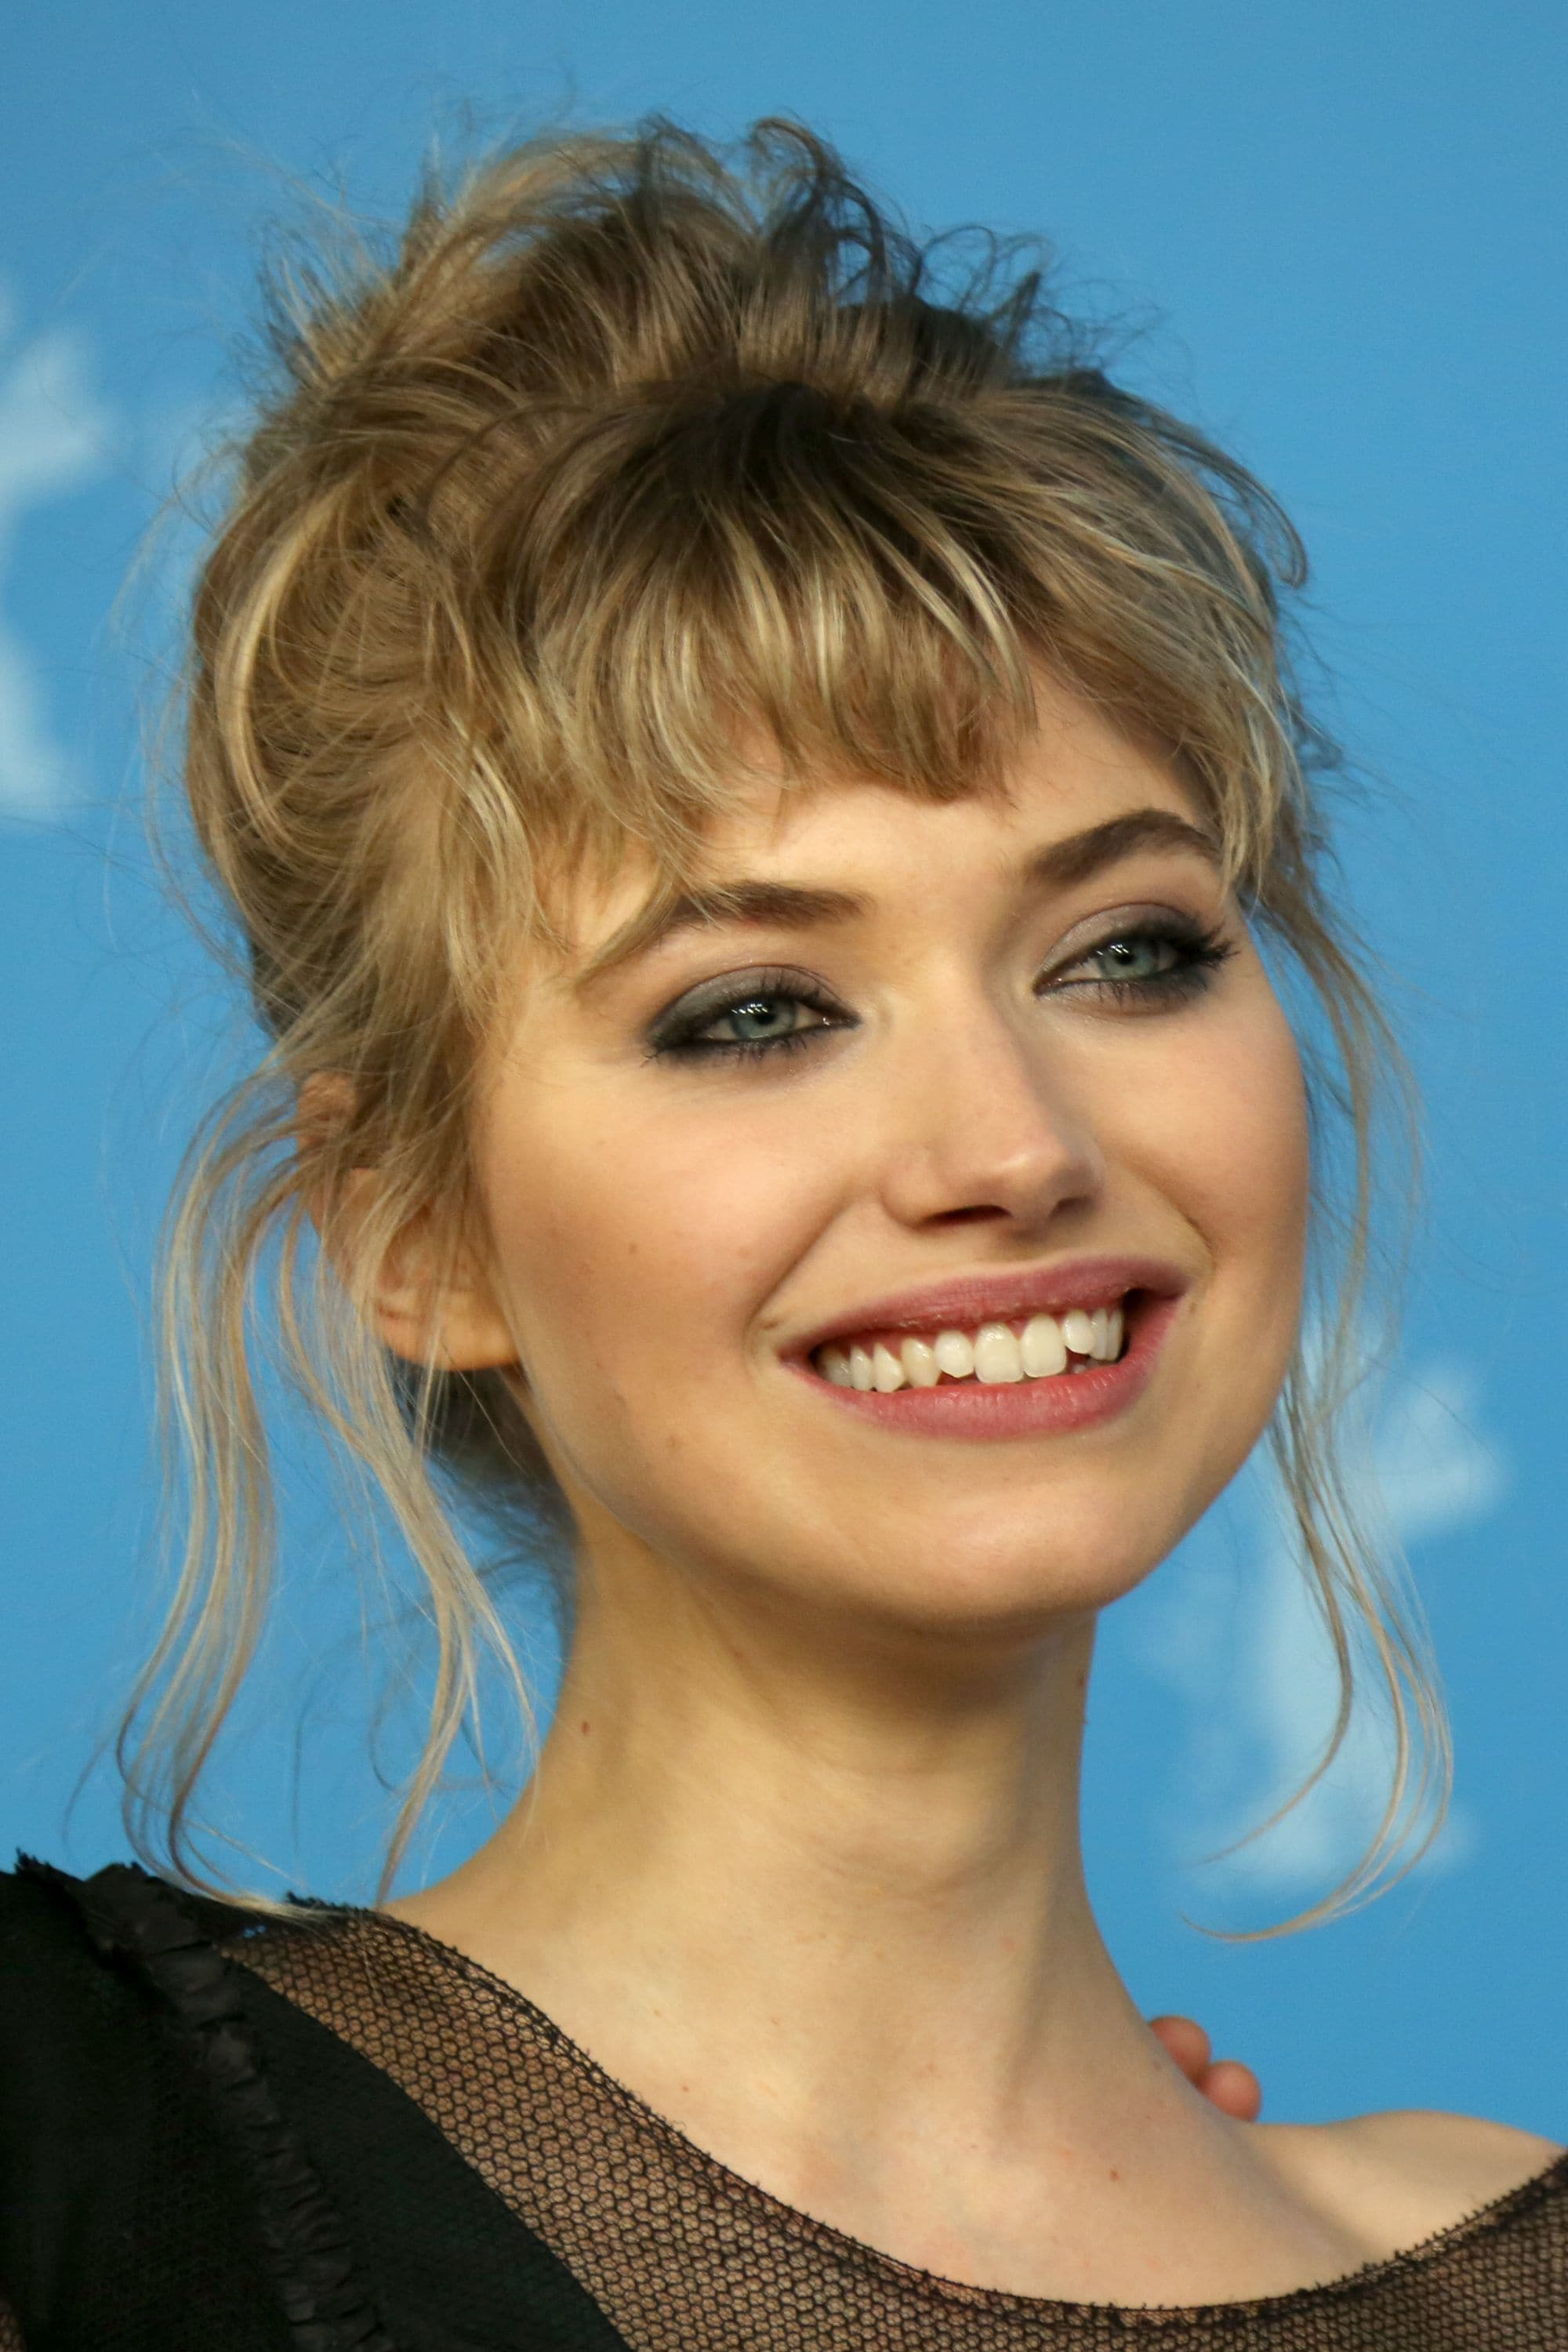 Micro fringe: Imogen Poots with wavy dirty blonde hair and micro fringe styles in a messy bun smiling.